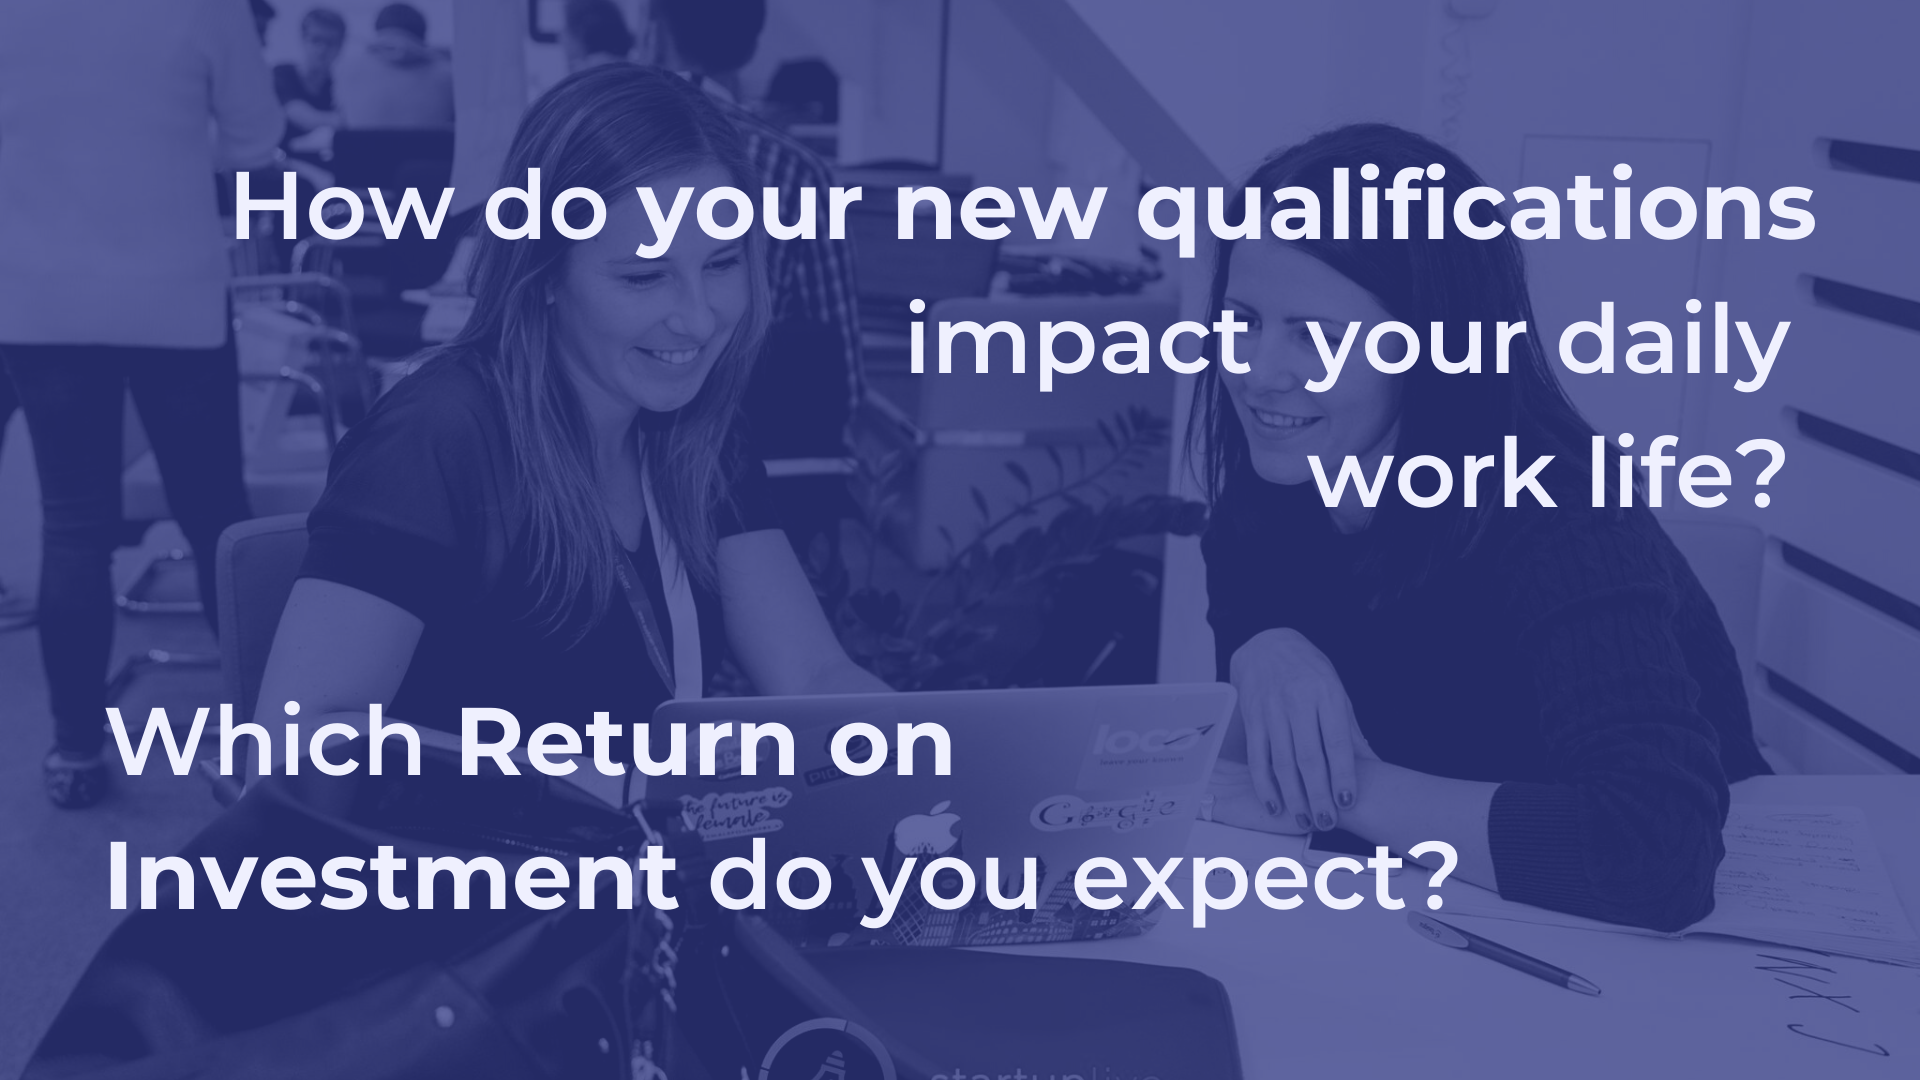 How do your new qualifications impact your daily work life? Which return on investment do you expect?